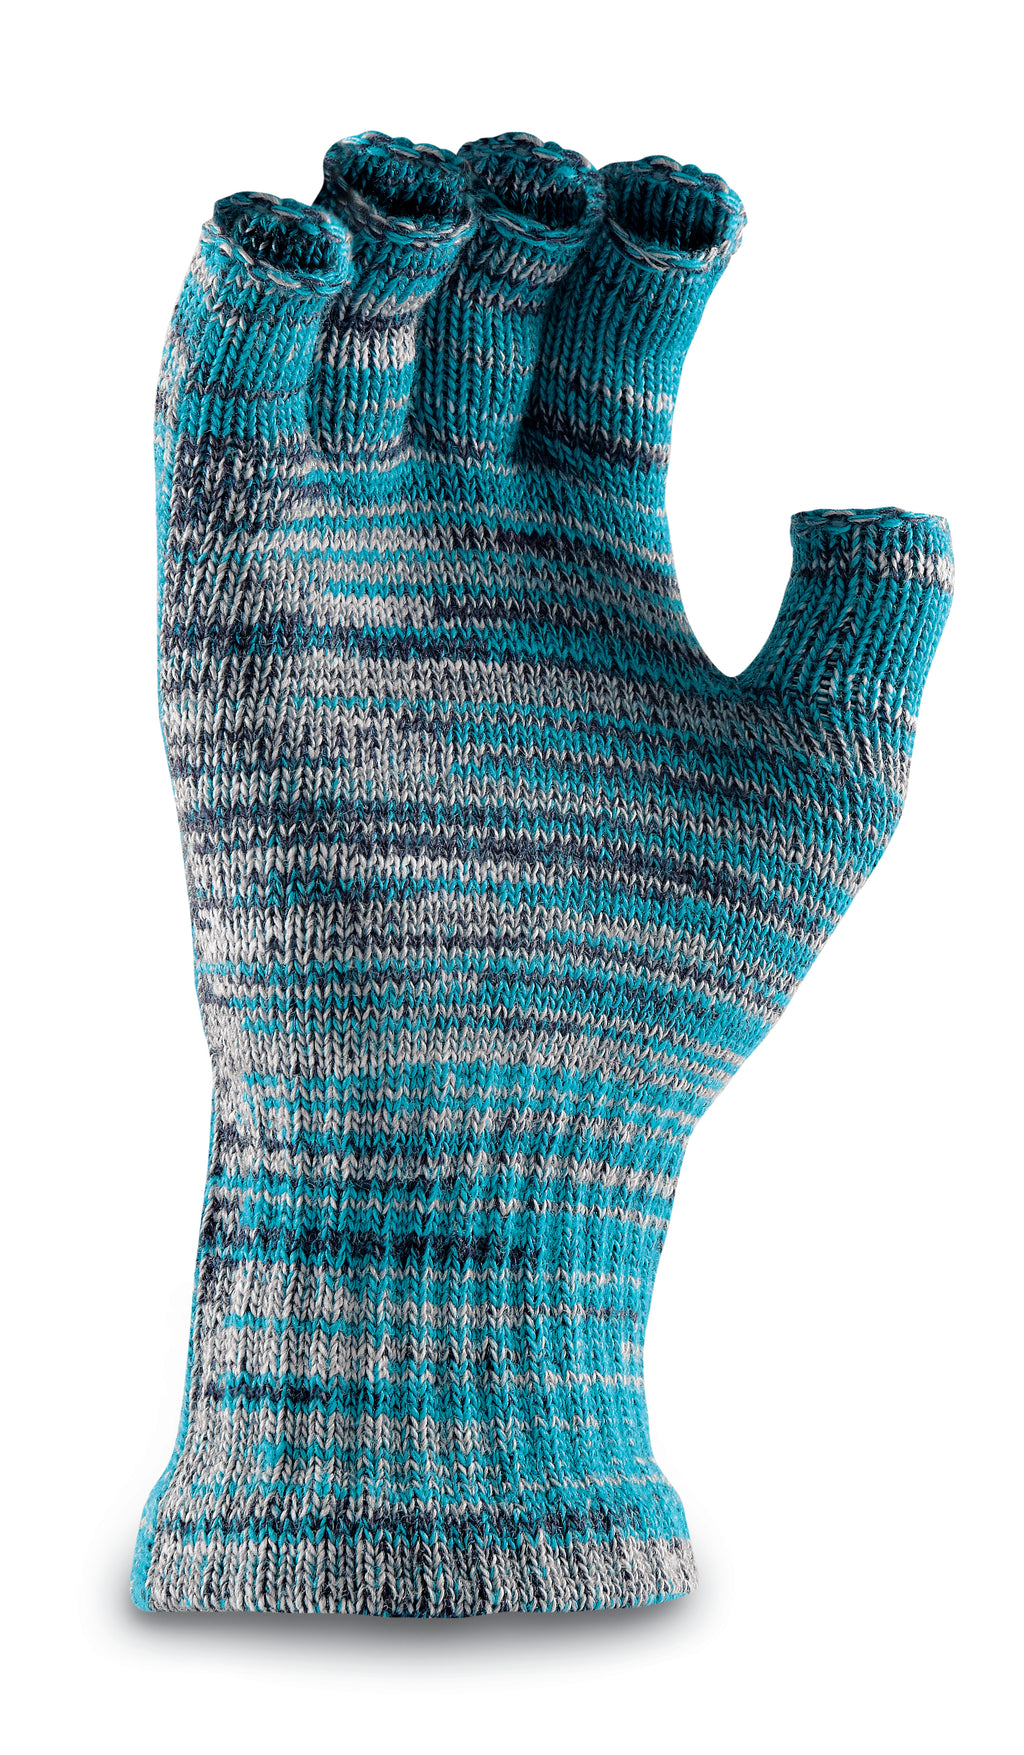 Fox River New American Ragg Adult Cold Weather Fingerless Glove